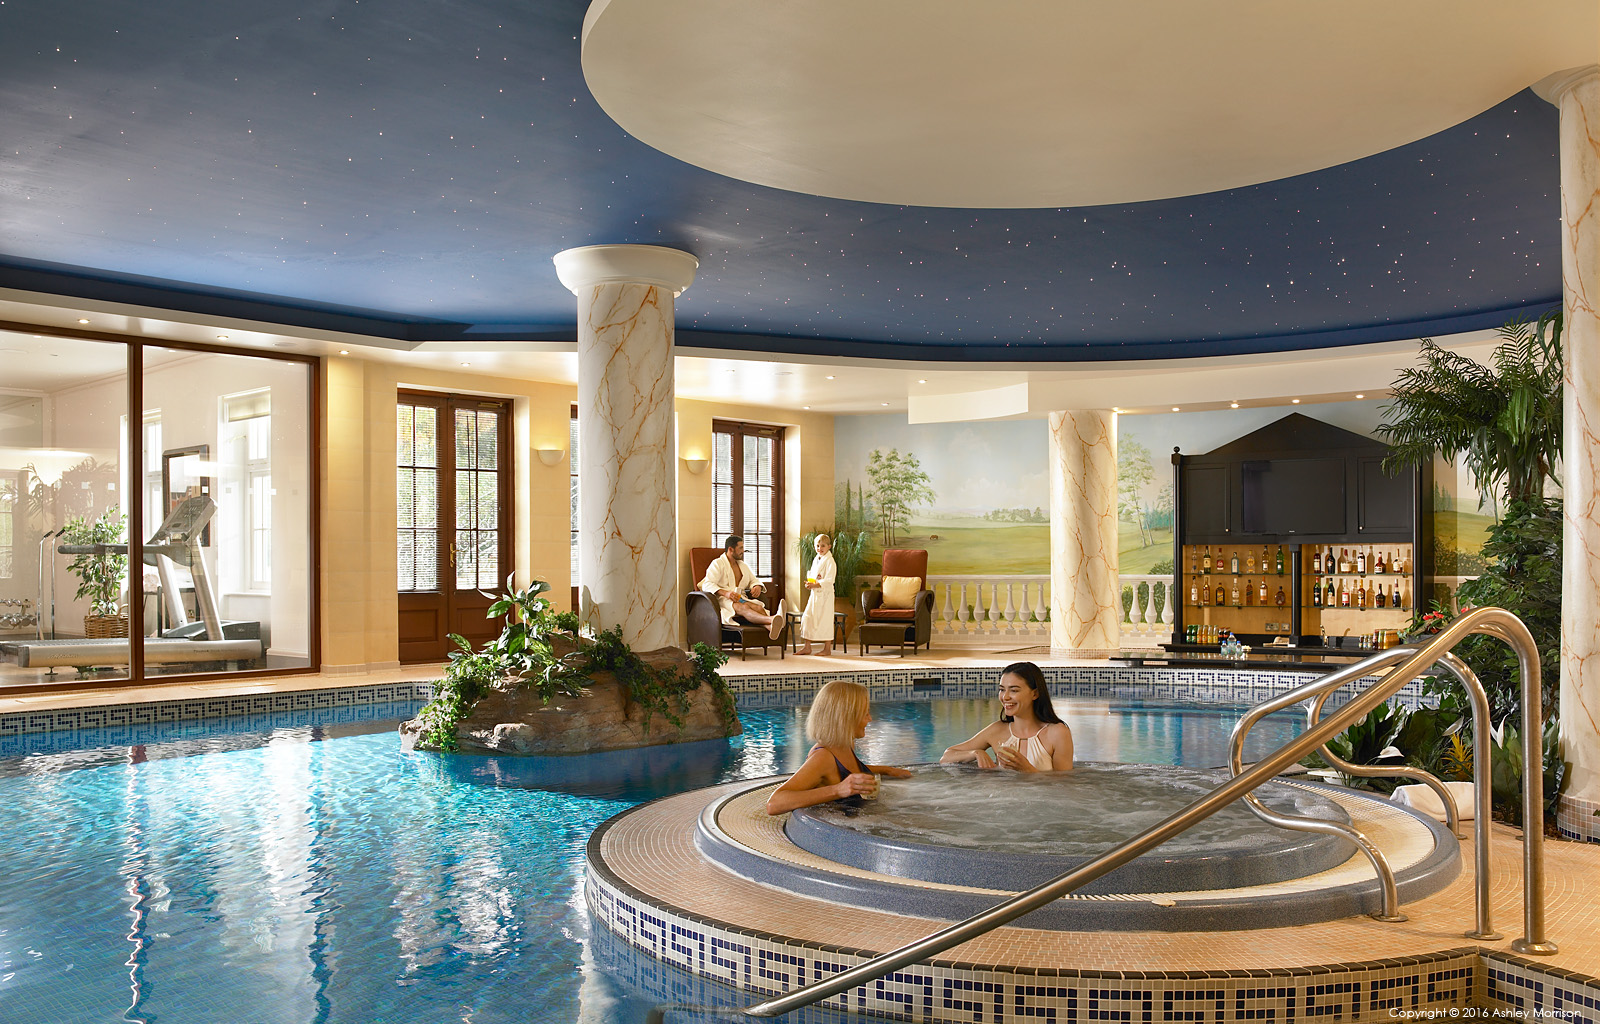 The swimming pool in Straffan House at The K Club in County Kildare.